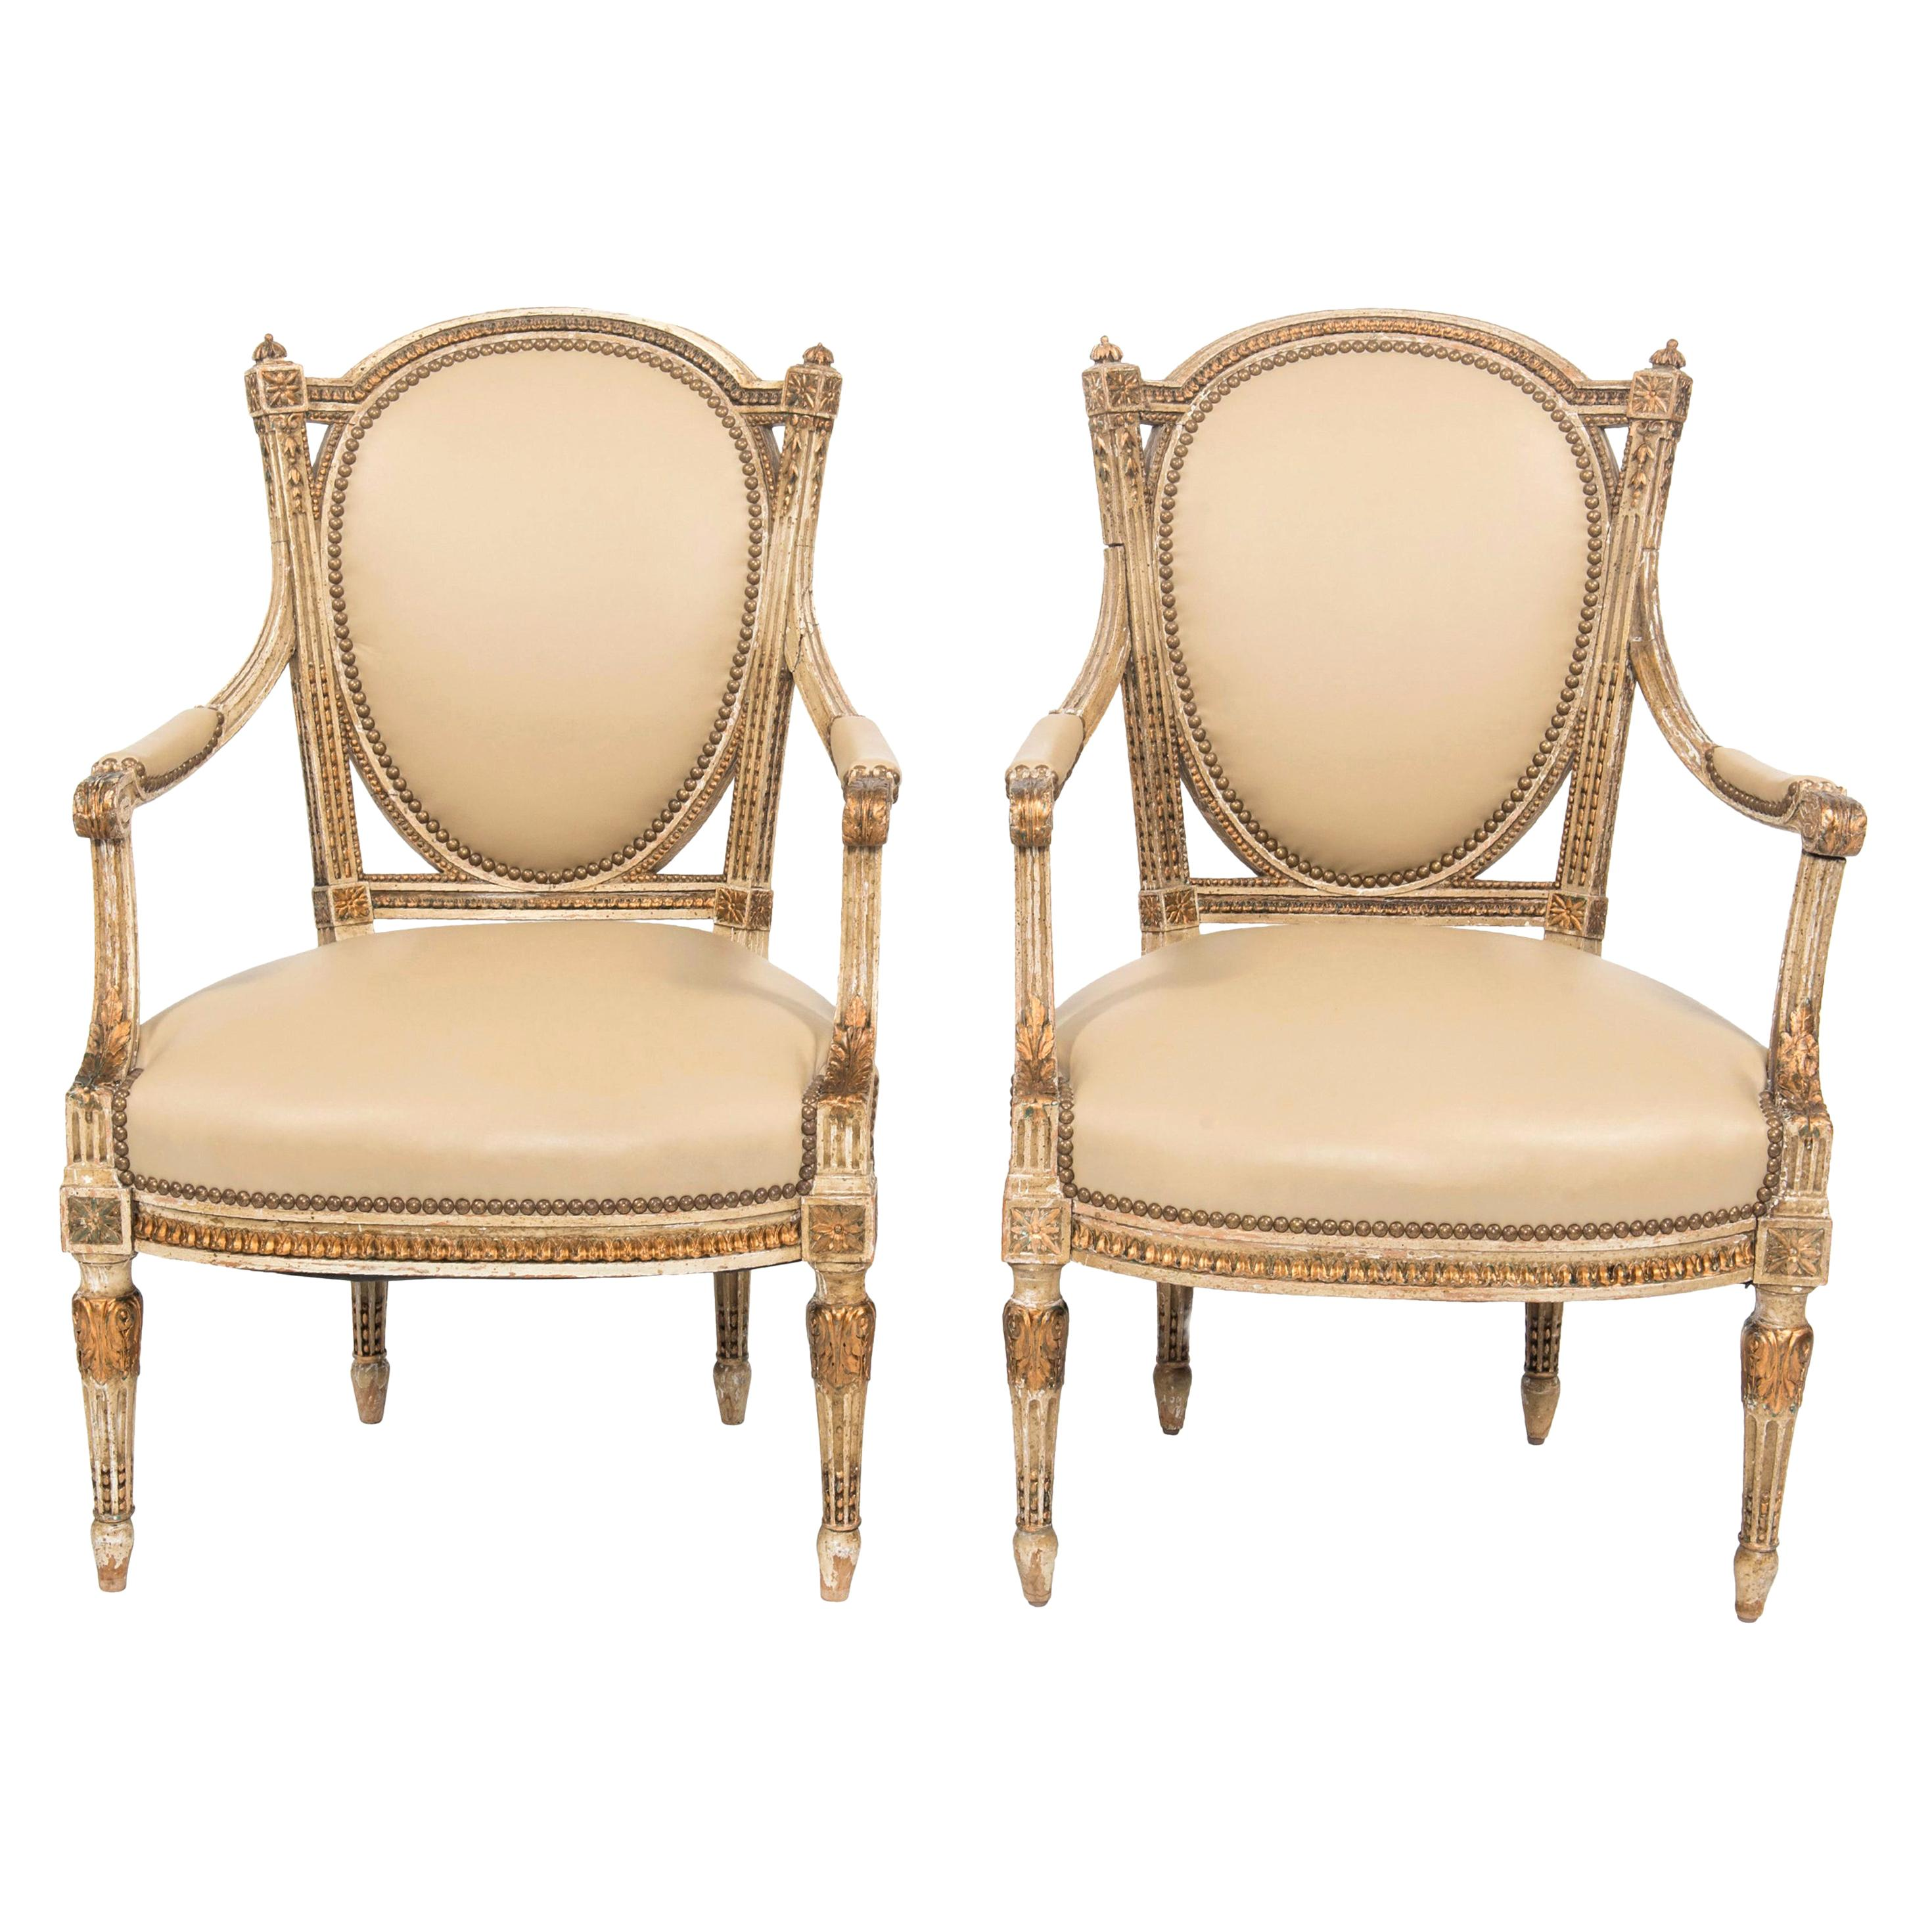 Pair of Early 20th Century Painted and Gilt French Louis XVI Style Fauteuils